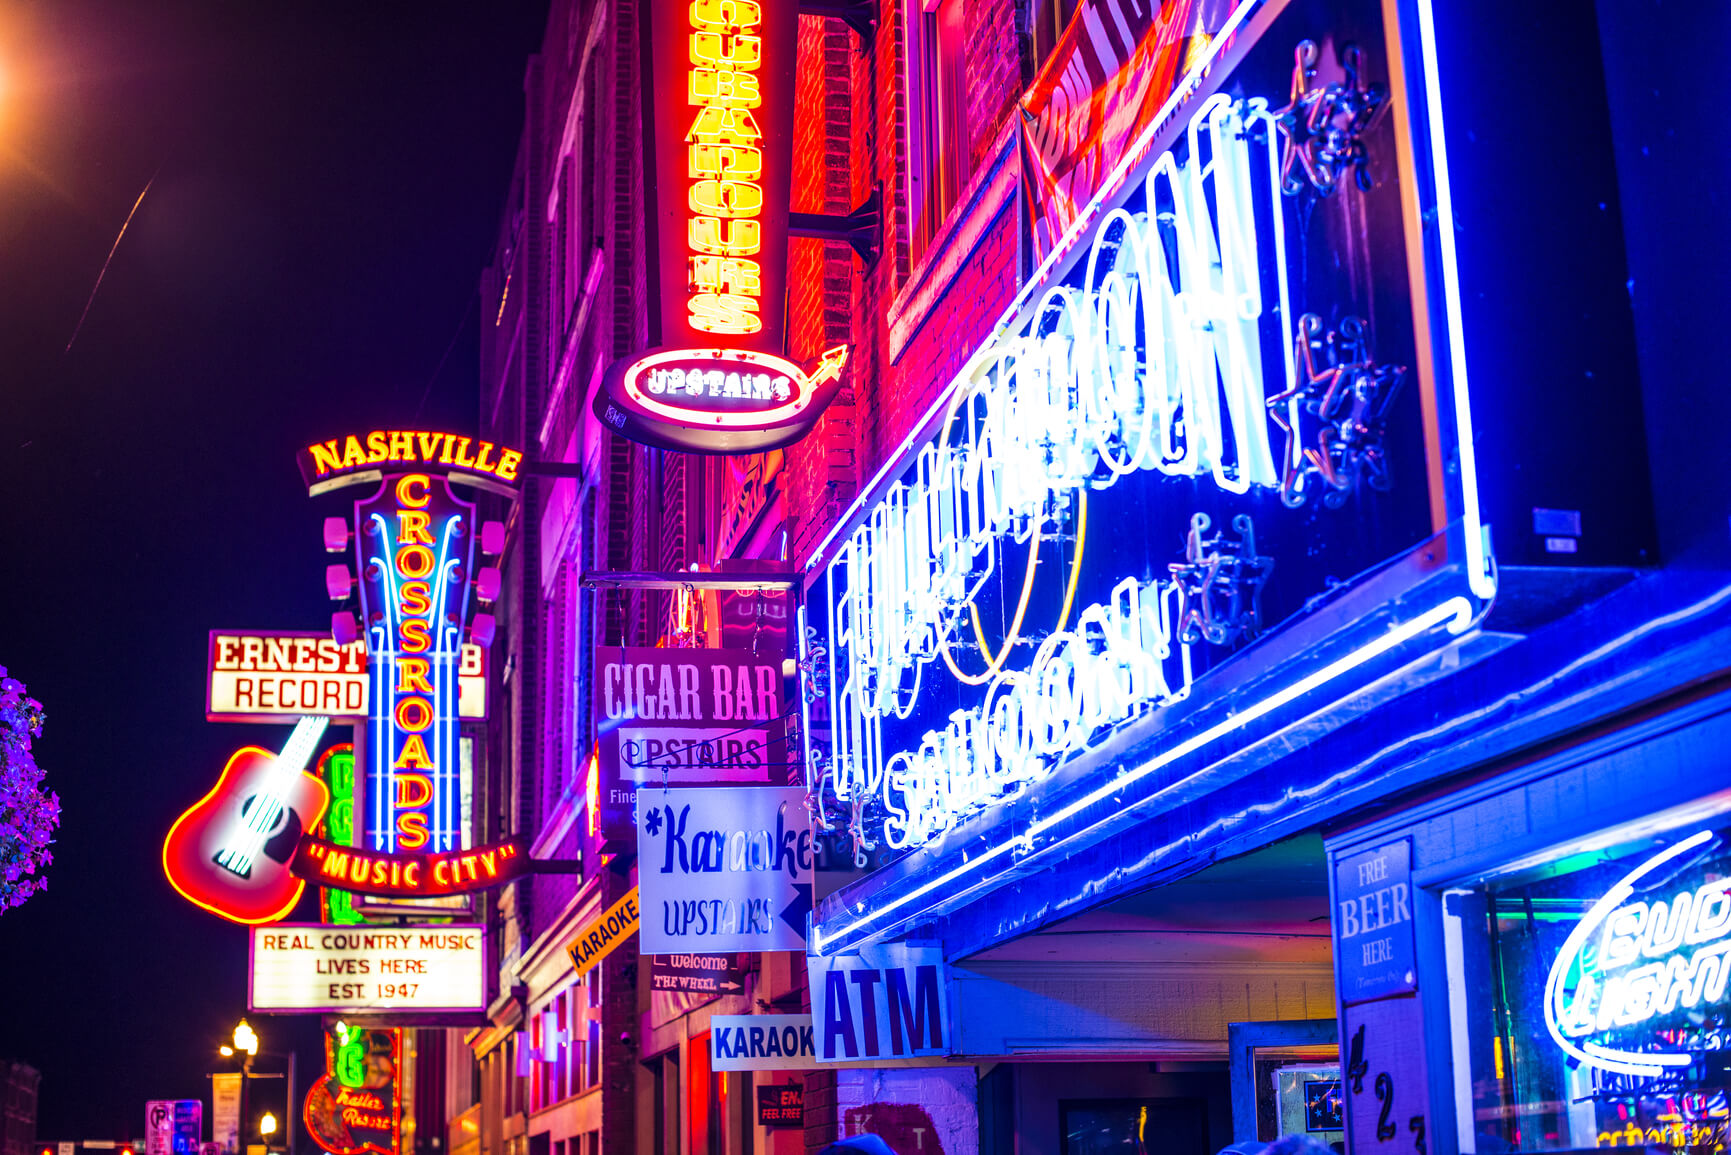 Flight deals from Cancun, Mexico to Nashville, USA | Secret Flying